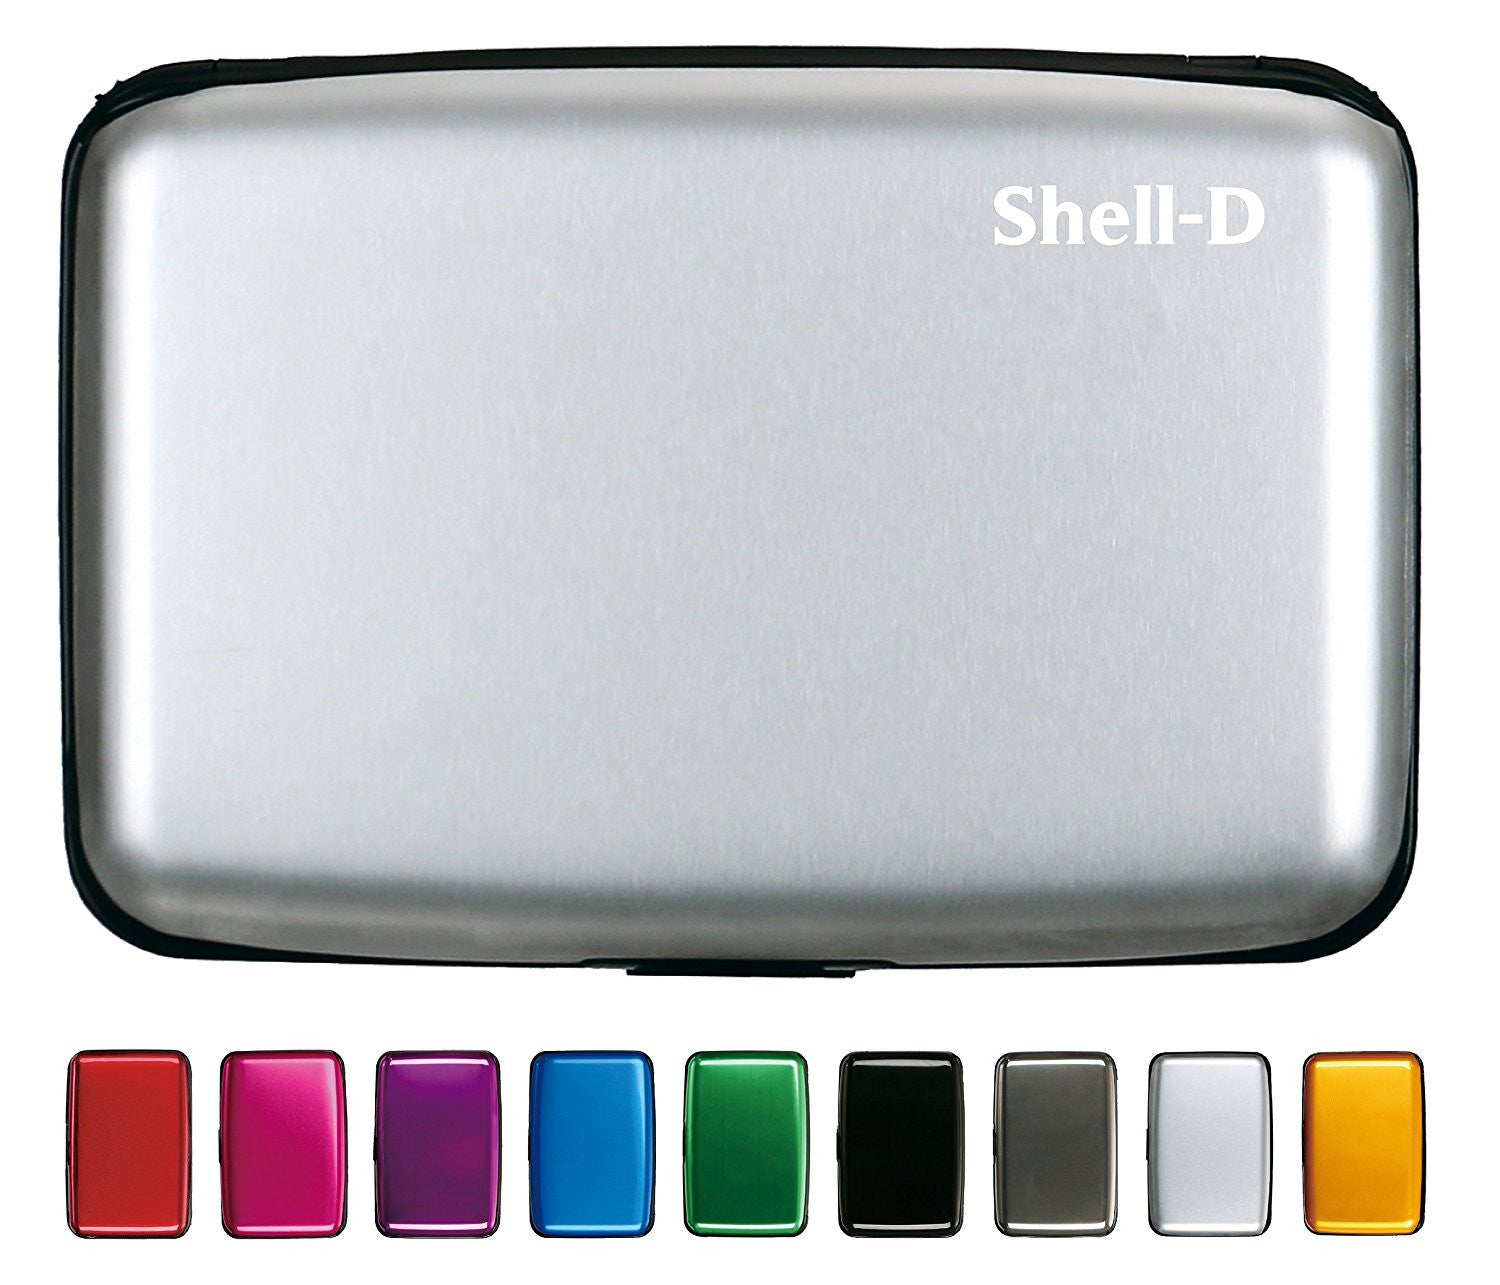 Shell D RFID Blocking Credit Card Protector The Mac Stop